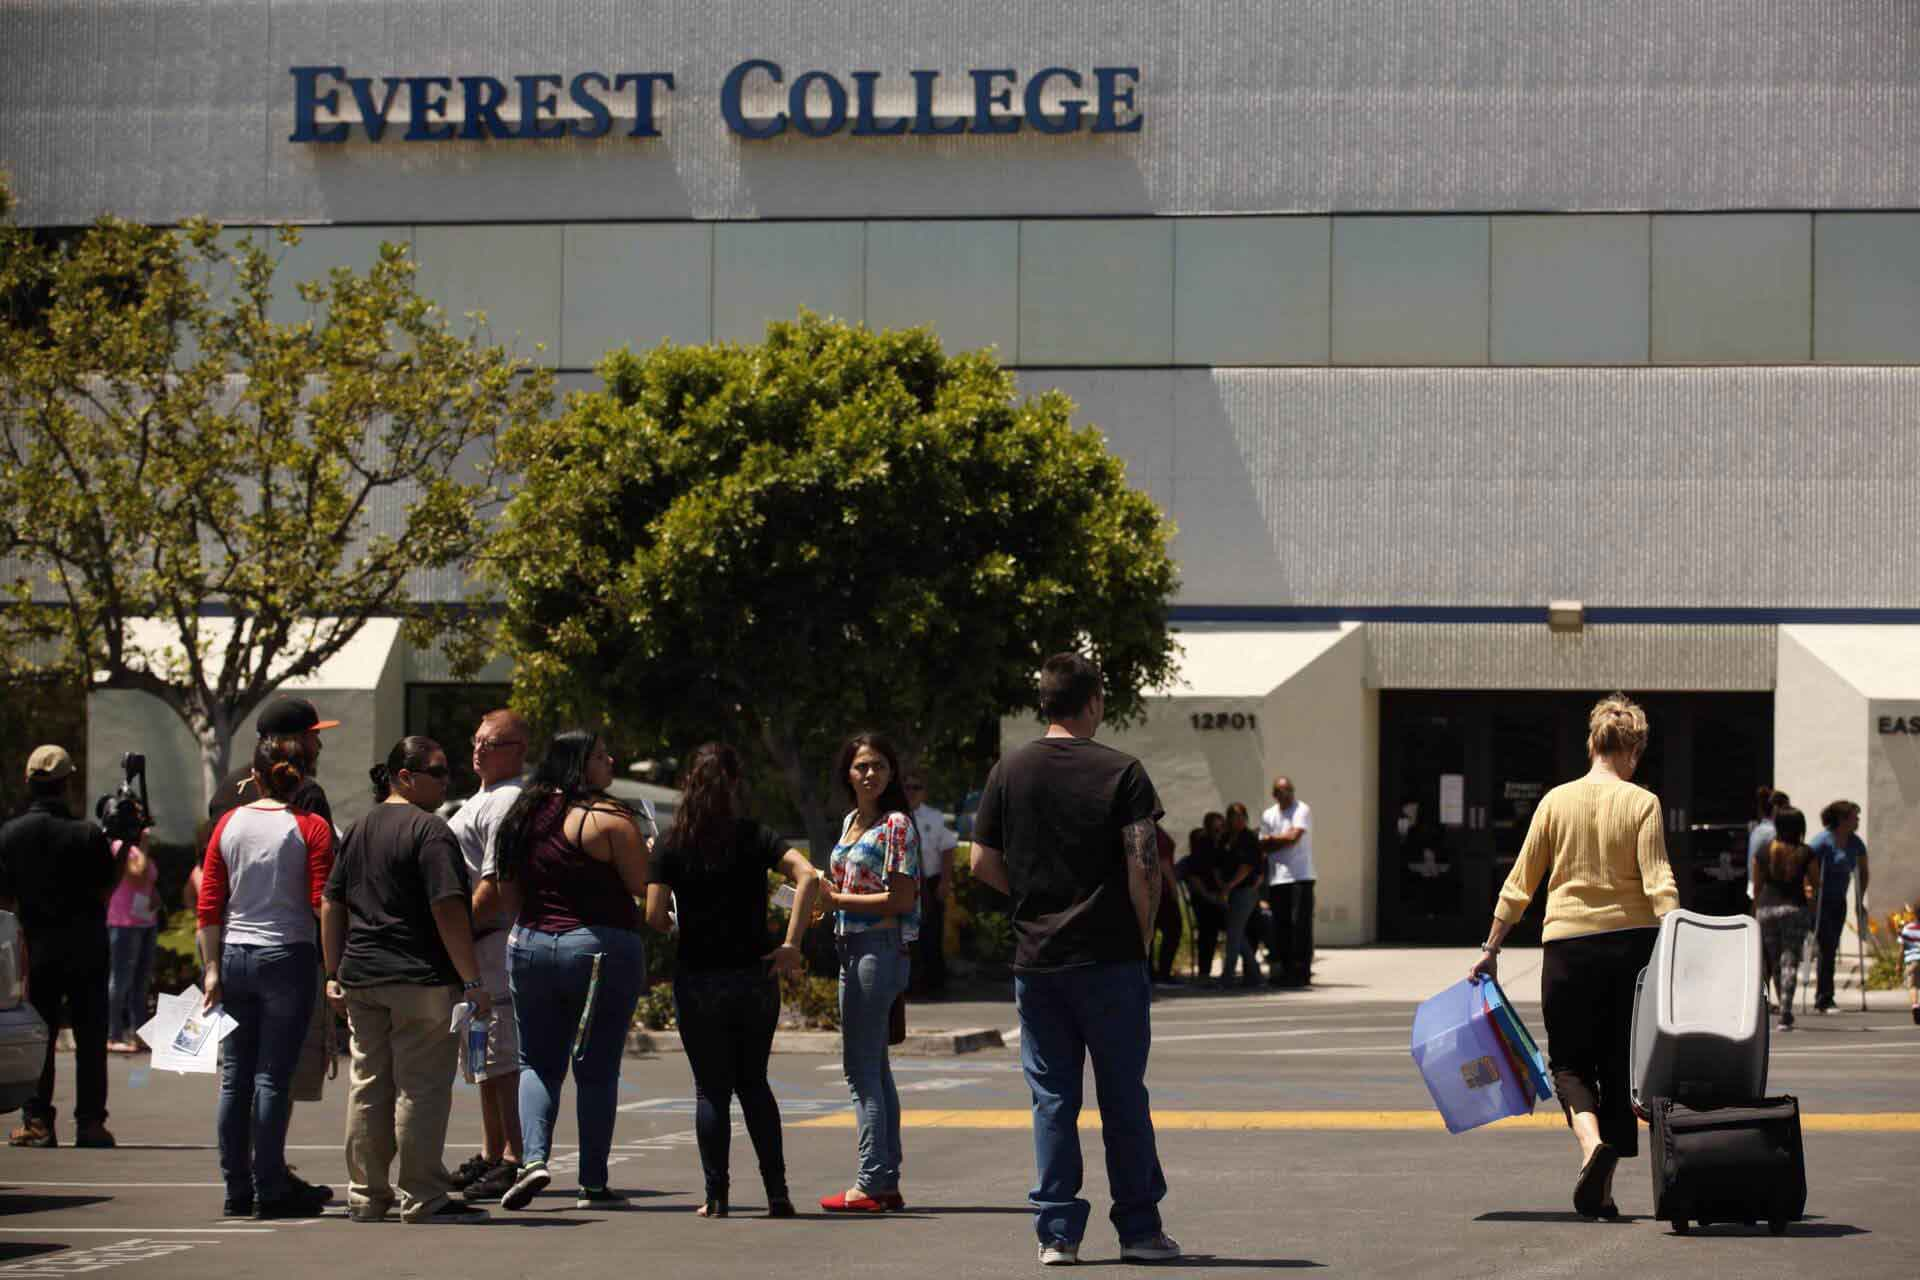 corinthian-colleges-scandal-01